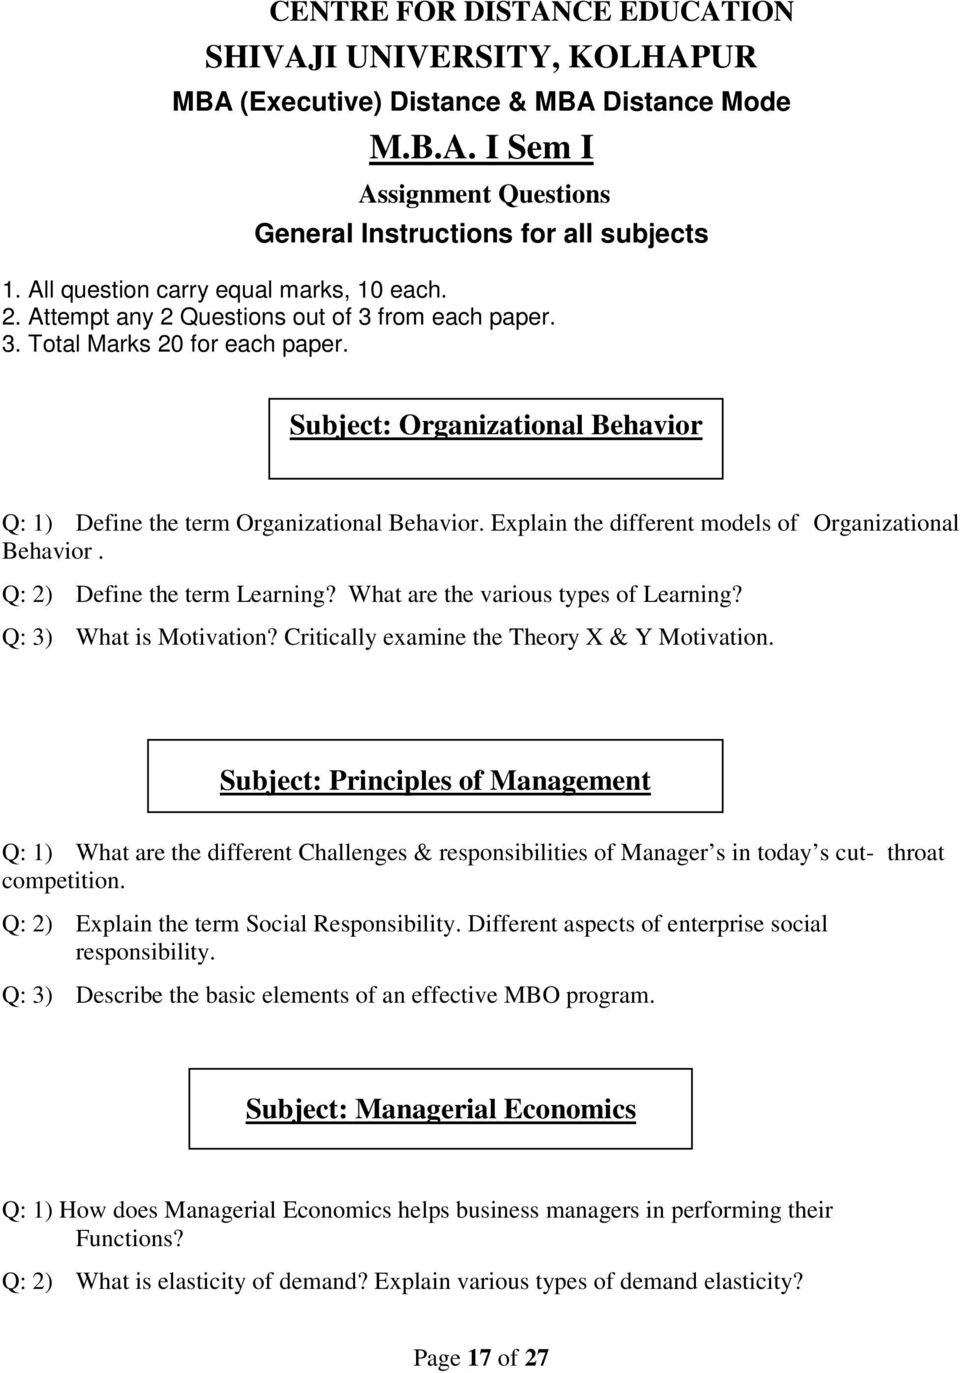 Subject: Organizational Behavior Q: 1) Define the term Organizational Behavior. Explain the different models of Organizational Behavior. Q: 2) Define the term Learning?